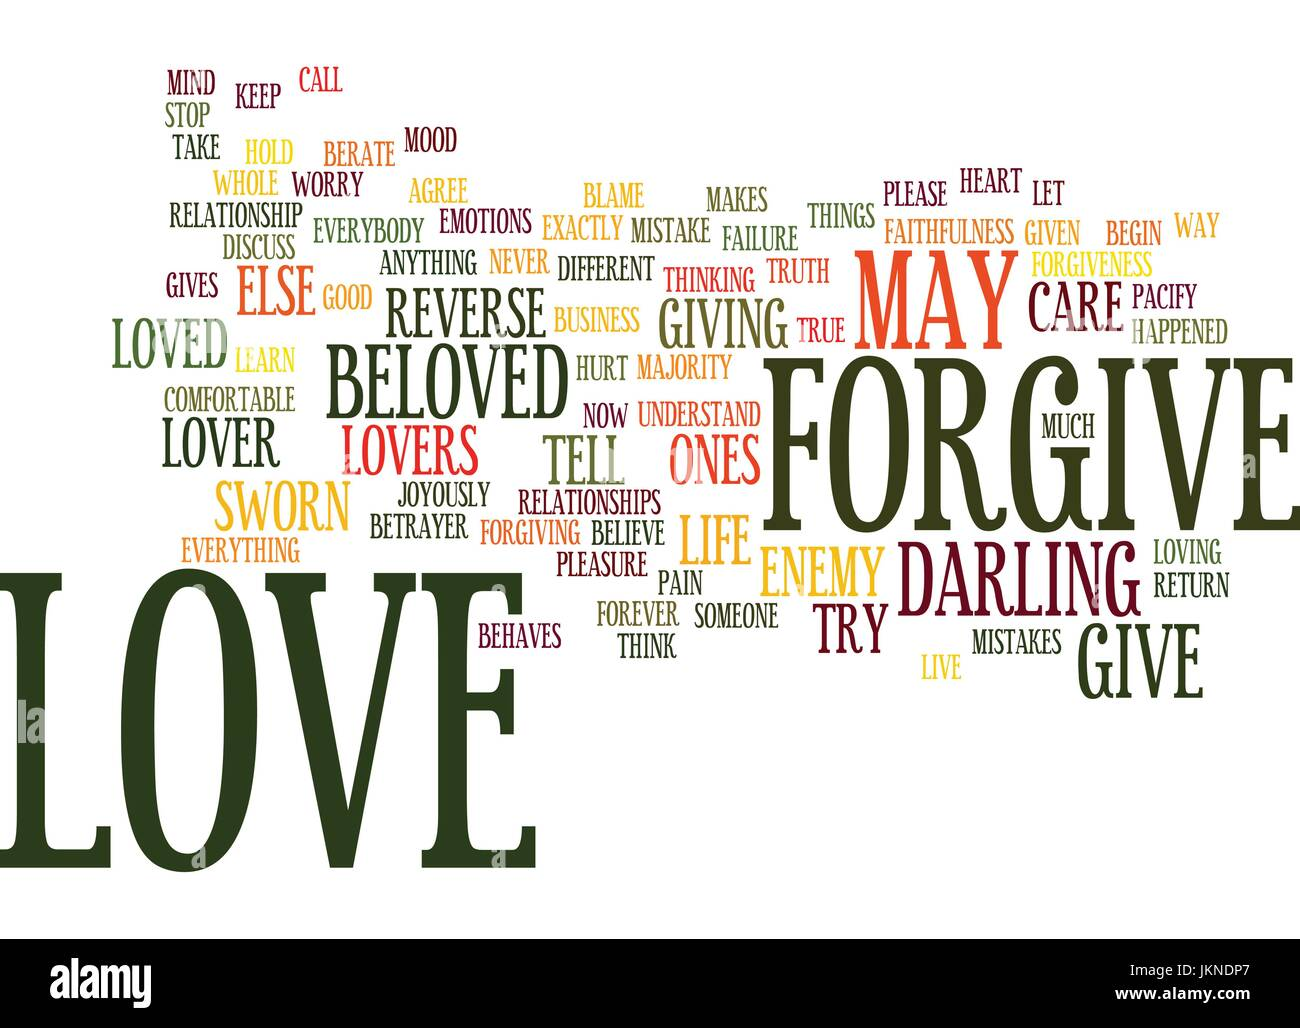 LOVE FORGIVENESS IS TRUE LOVE Text Background Word Cloud Concept Stock Vector